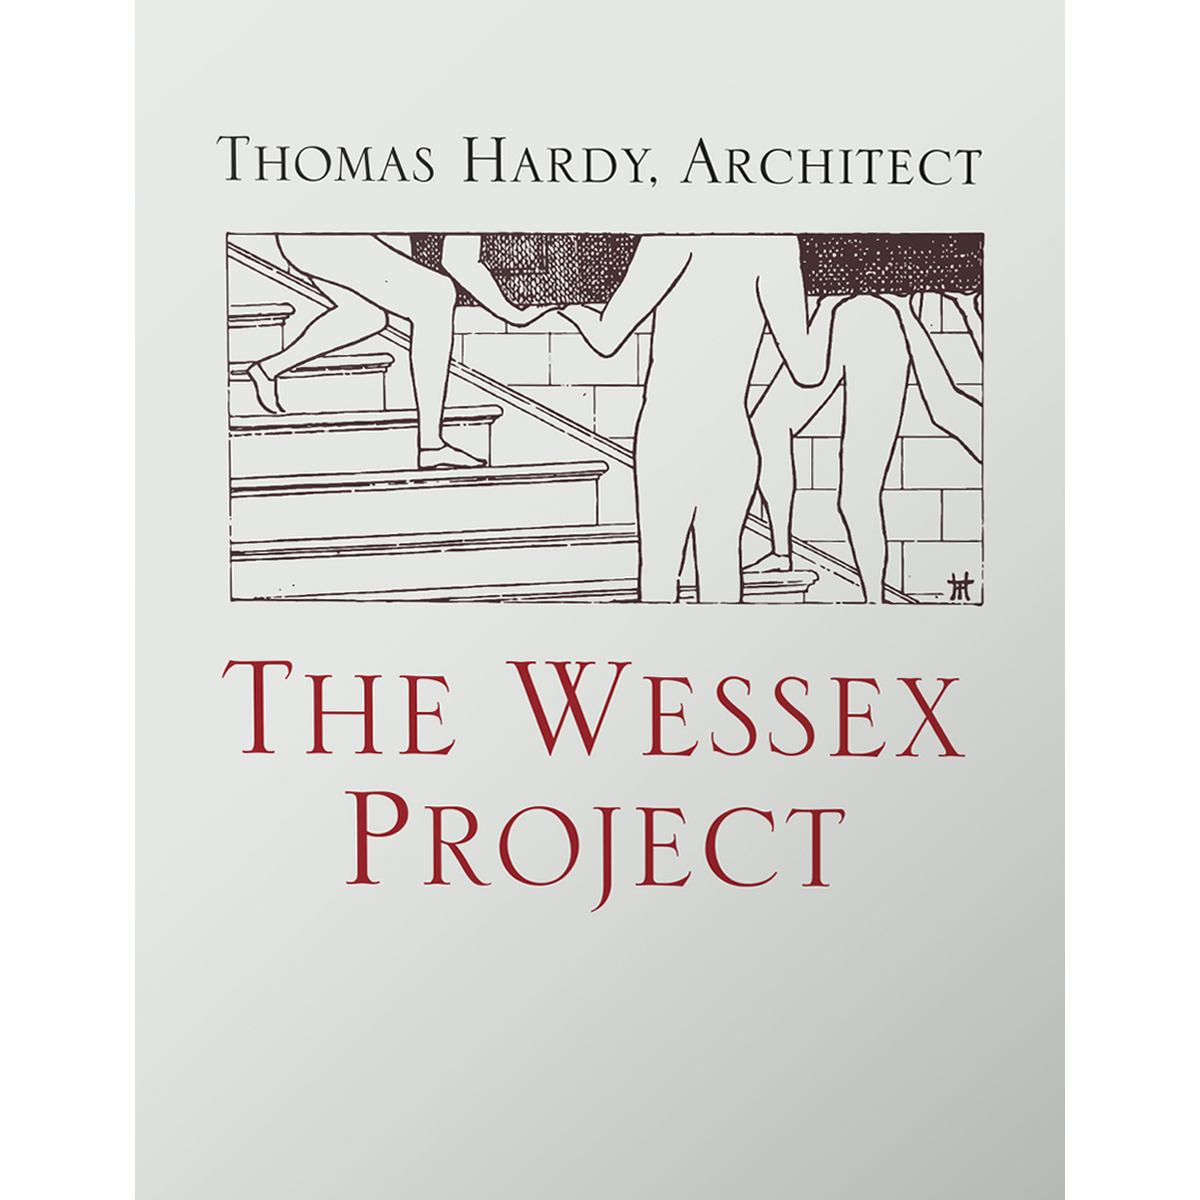 The Wessex Project. Thomas Hardy, Architect